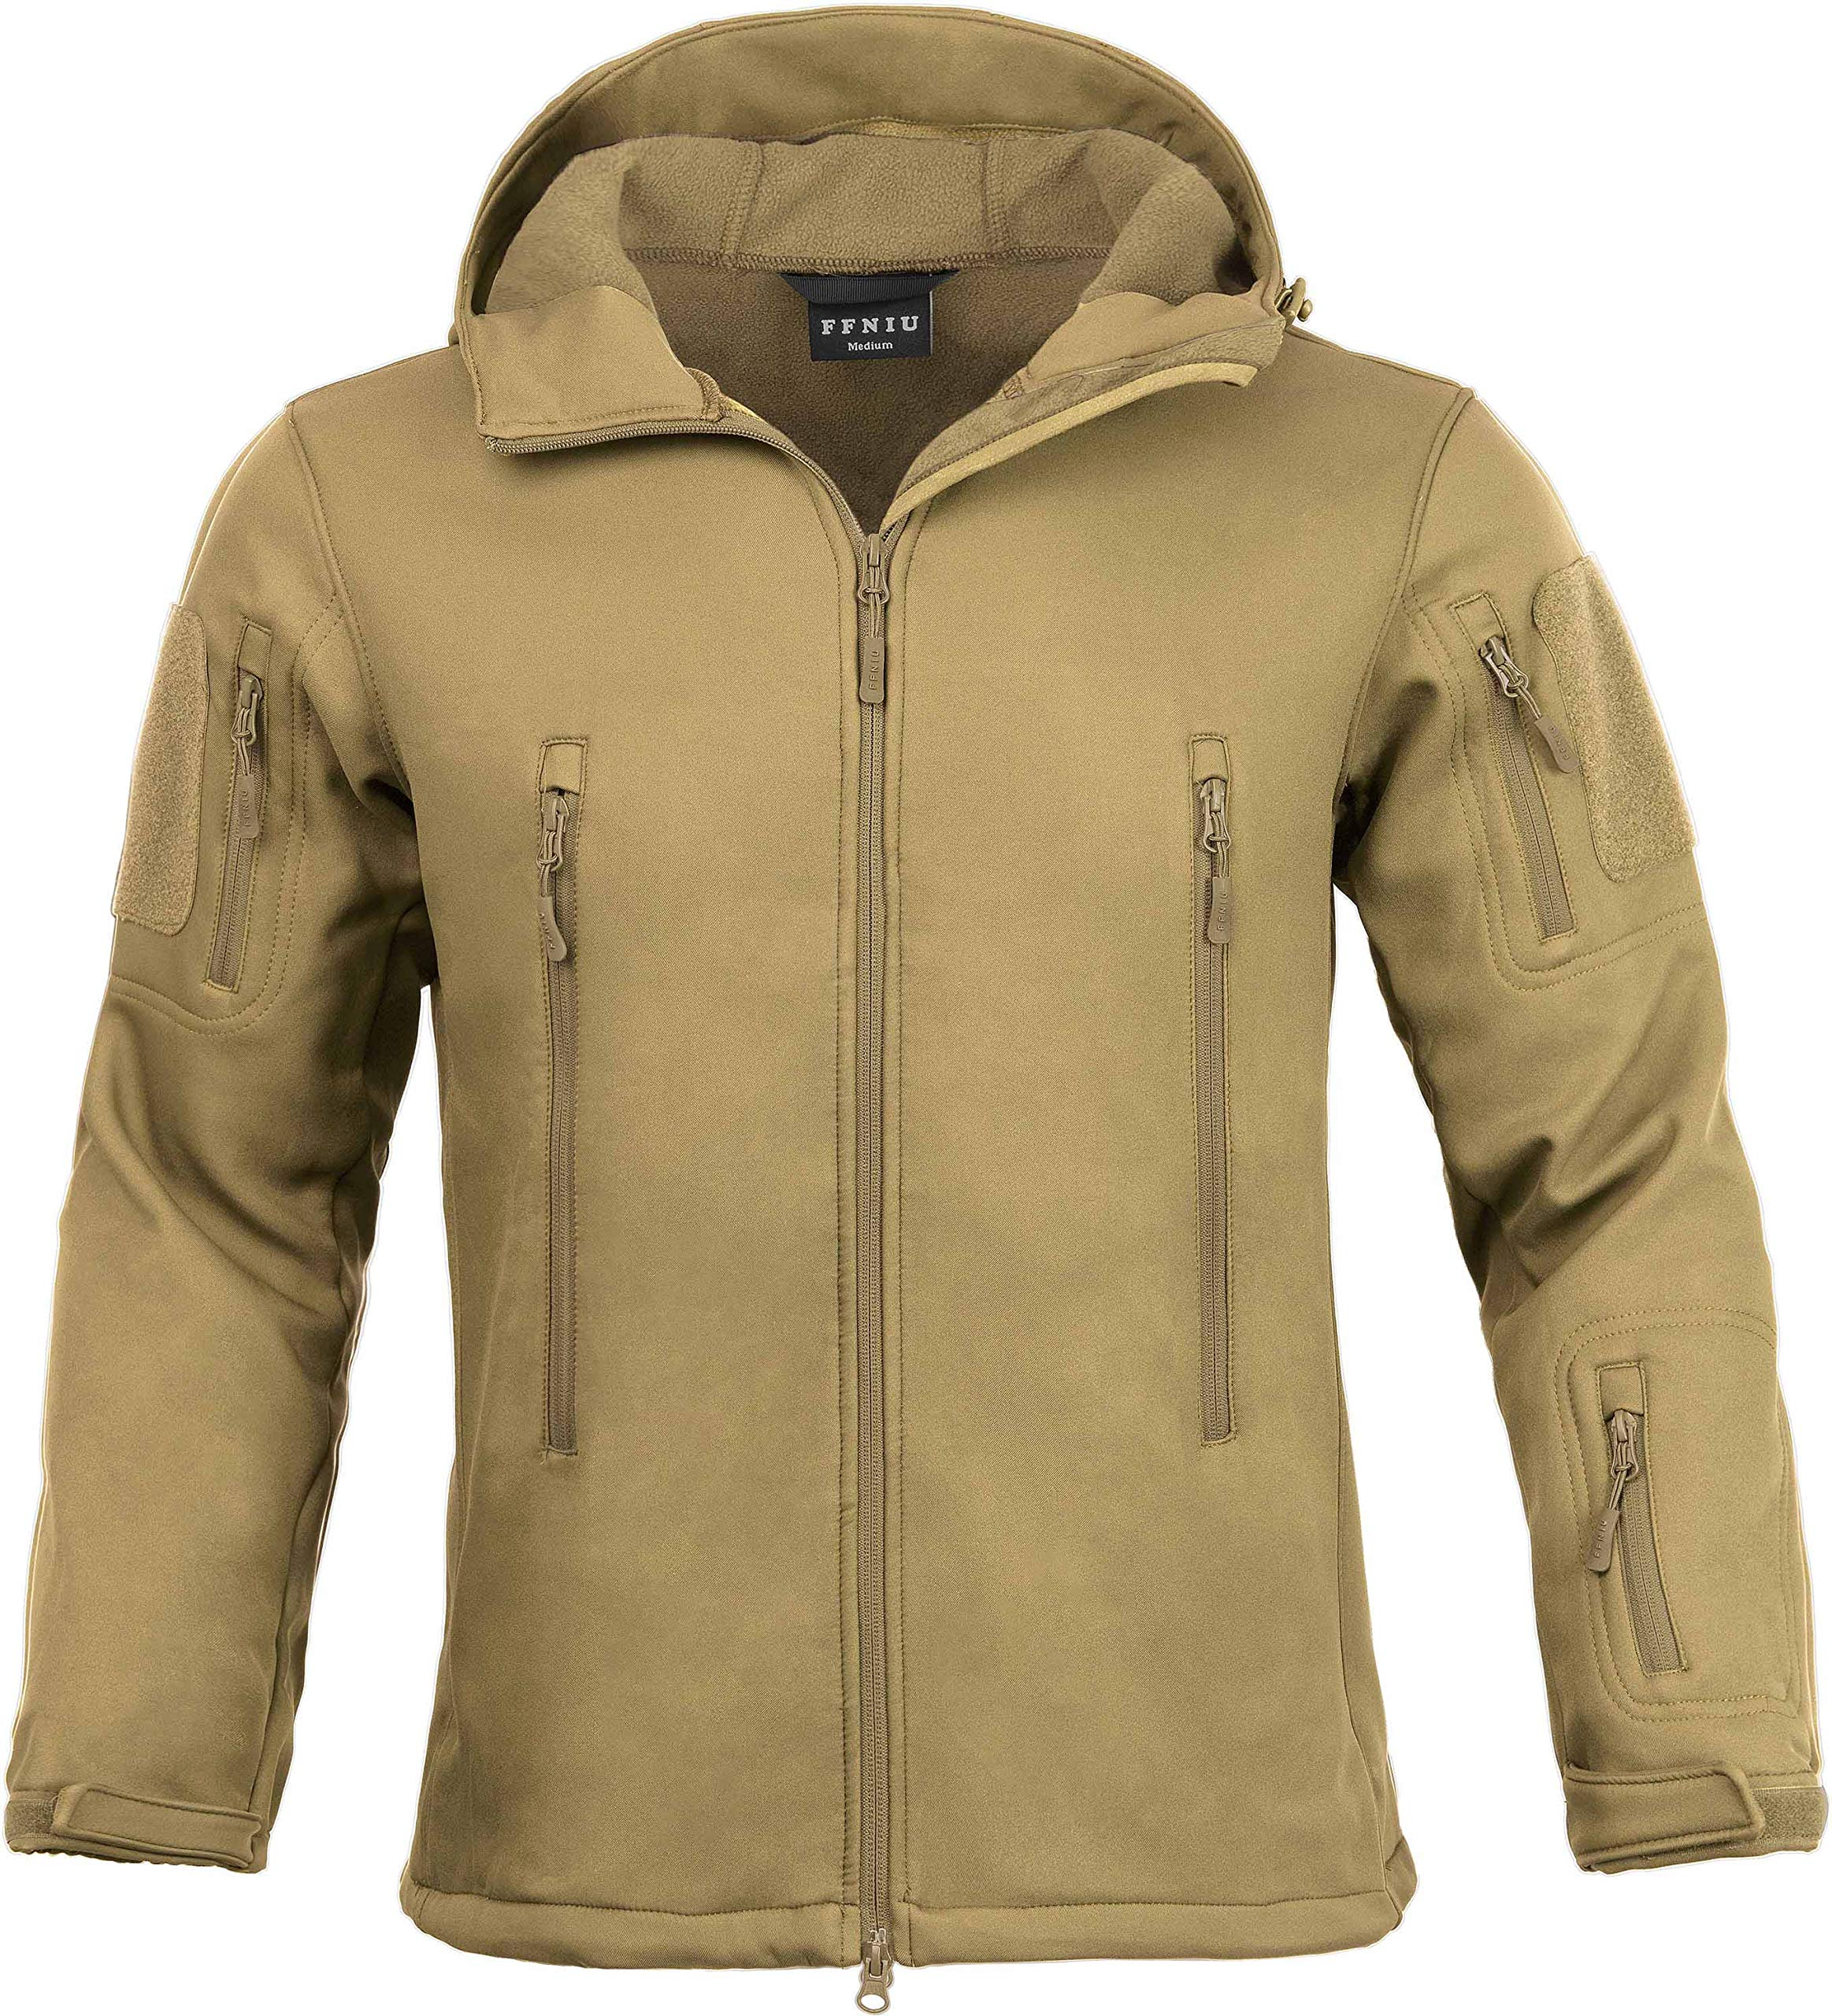 Tactical Jacket for Men Water Repellent Windproof Coat Big Tall Mens Fleece Lined Softshell Jackets by FFNIU